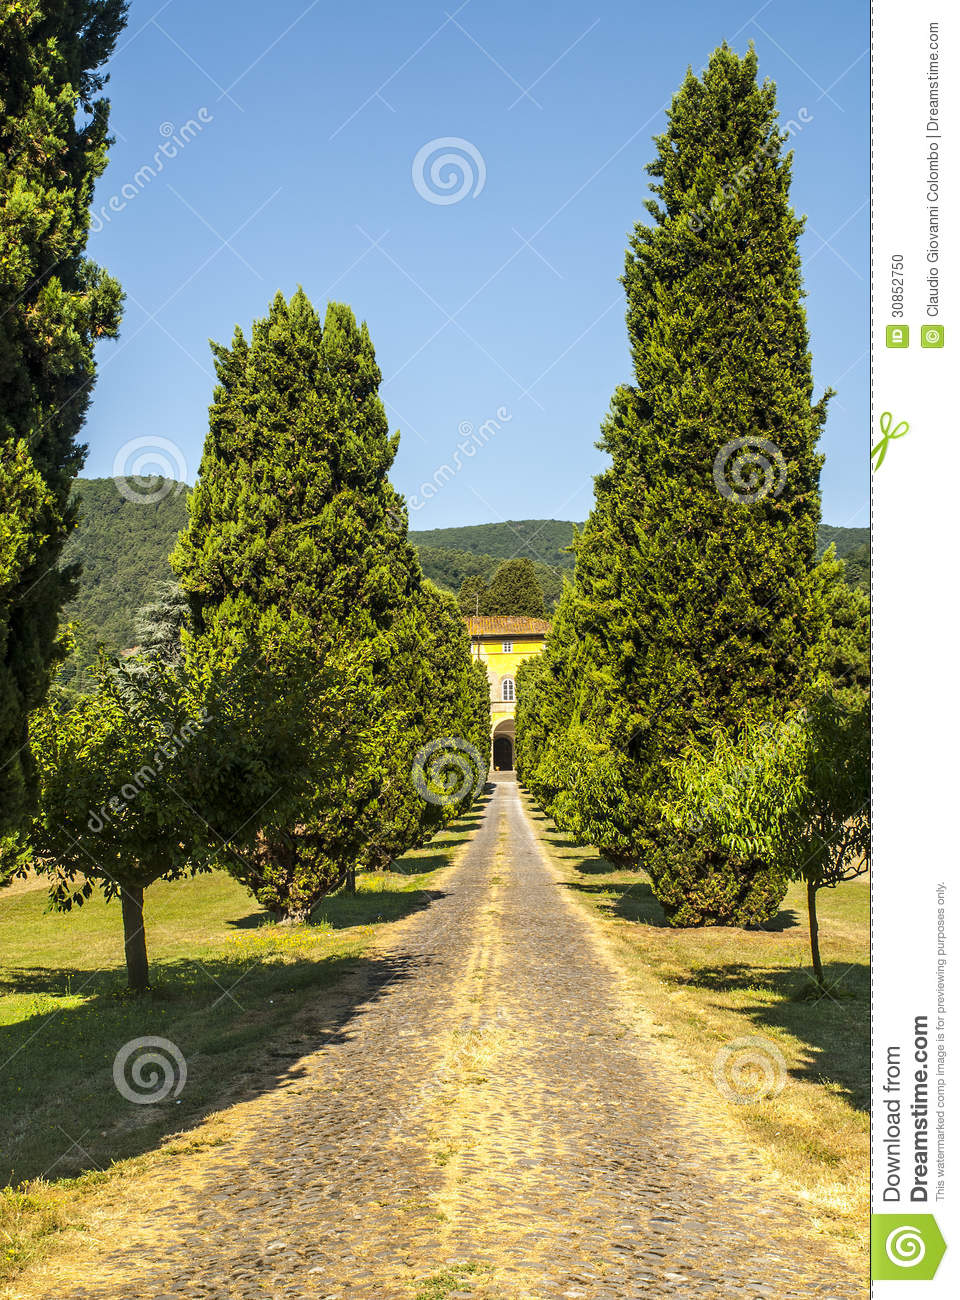 Lucca (Tuscany) - Ancient villa with cypresses